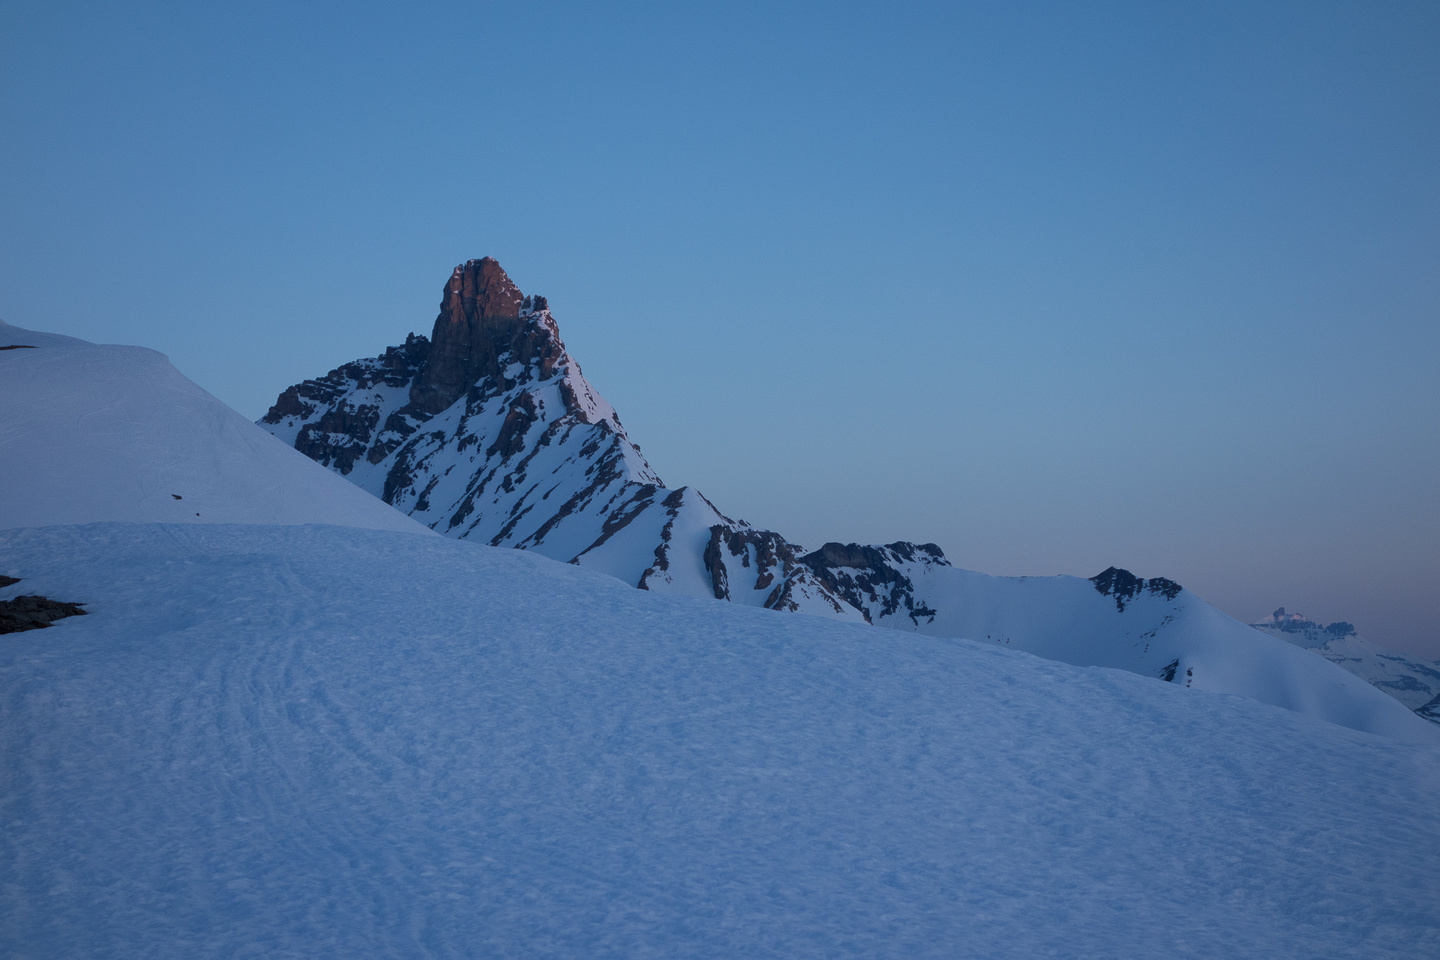 Hiking up the ridge in pre-dawn light on a firm snow crust. Hilda Peak visible here.